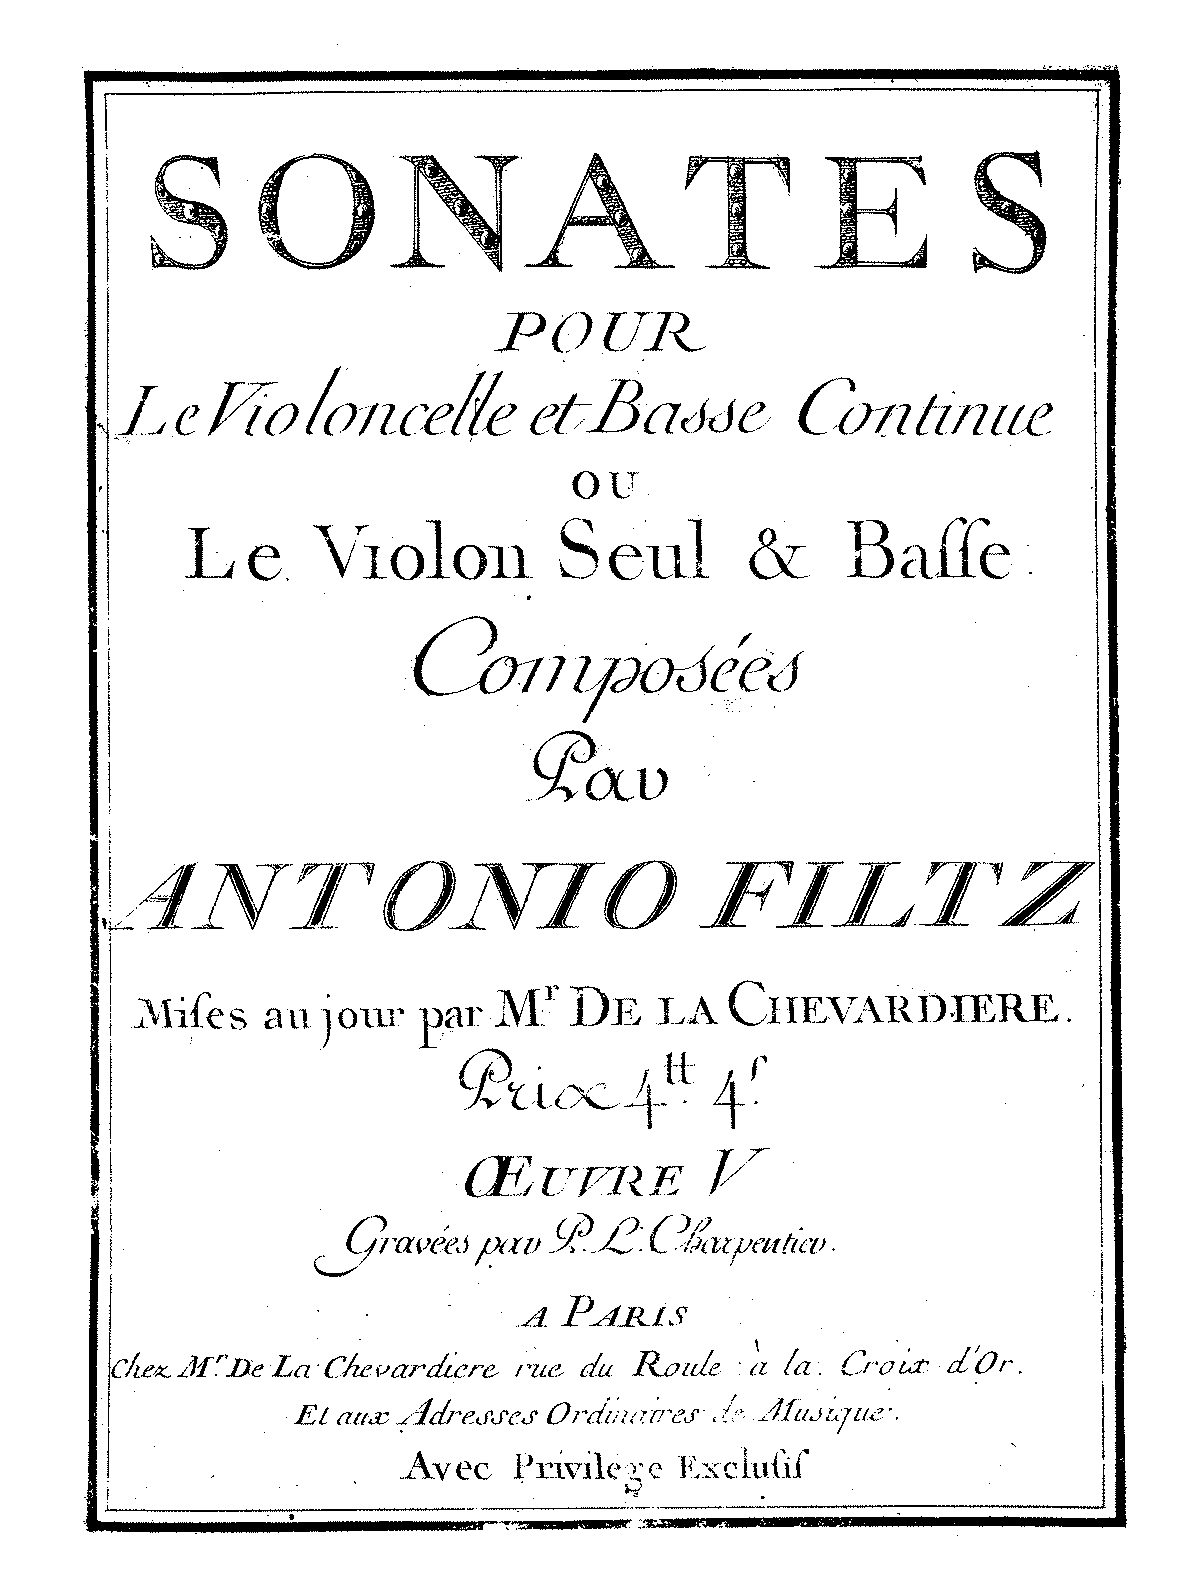 PMLP472651-Filtz - 3 Sonatas for Cello and BC (or Violin and BC) Op5 all.pdf